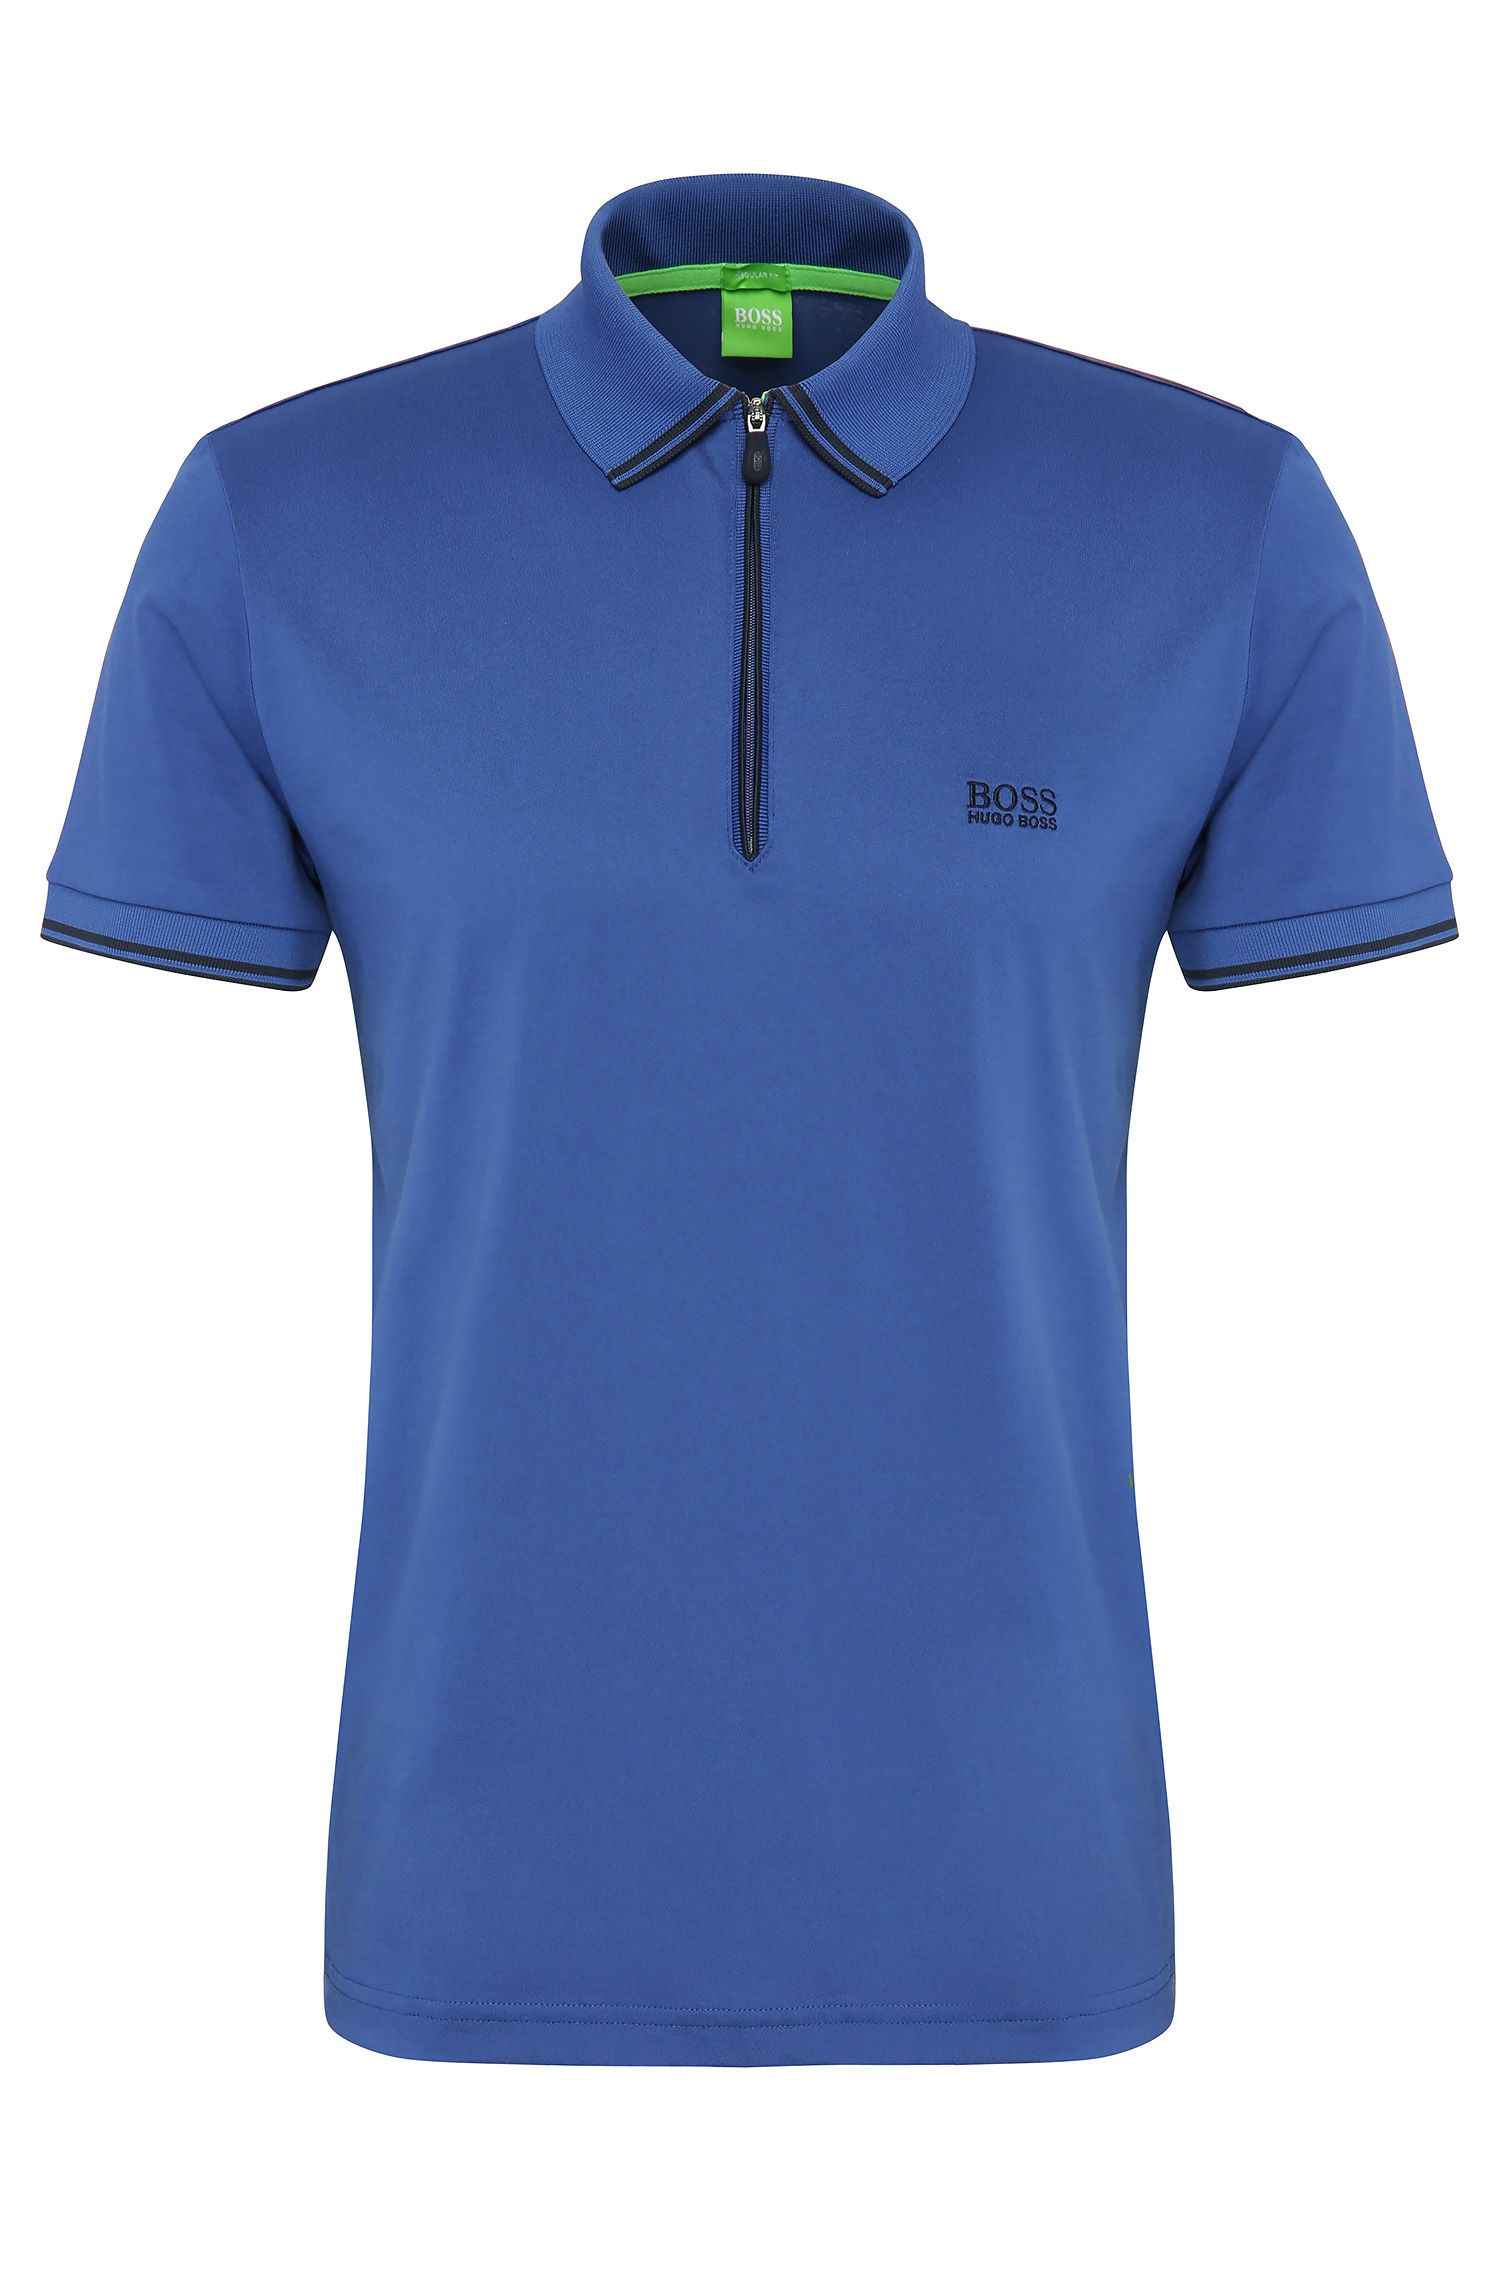 'Philix' | Modern Fit, Cotton Blend Contrast Stripe Polo